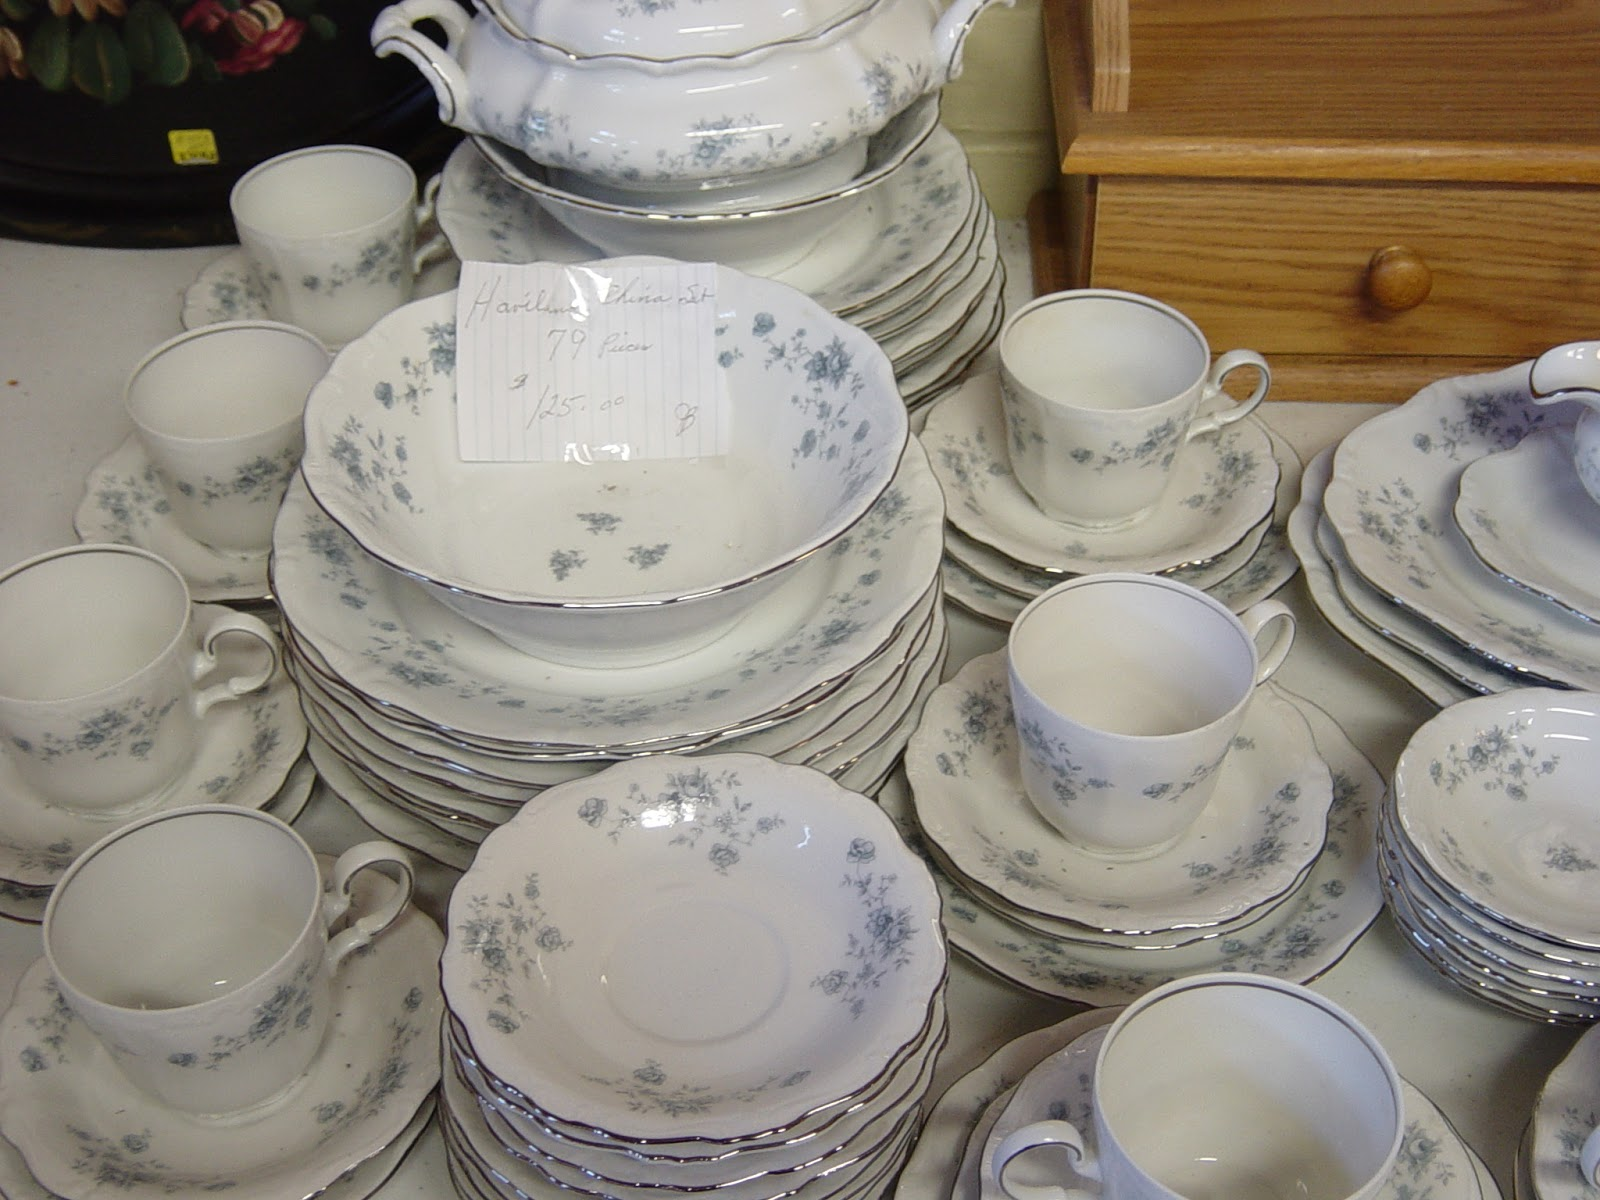 This set was more economical...7O some pieces for 75 dollars. Very pale blue flowers on them trimmed in silver. I swear if I had the room for these ... & SheJunks: Dish Sets....